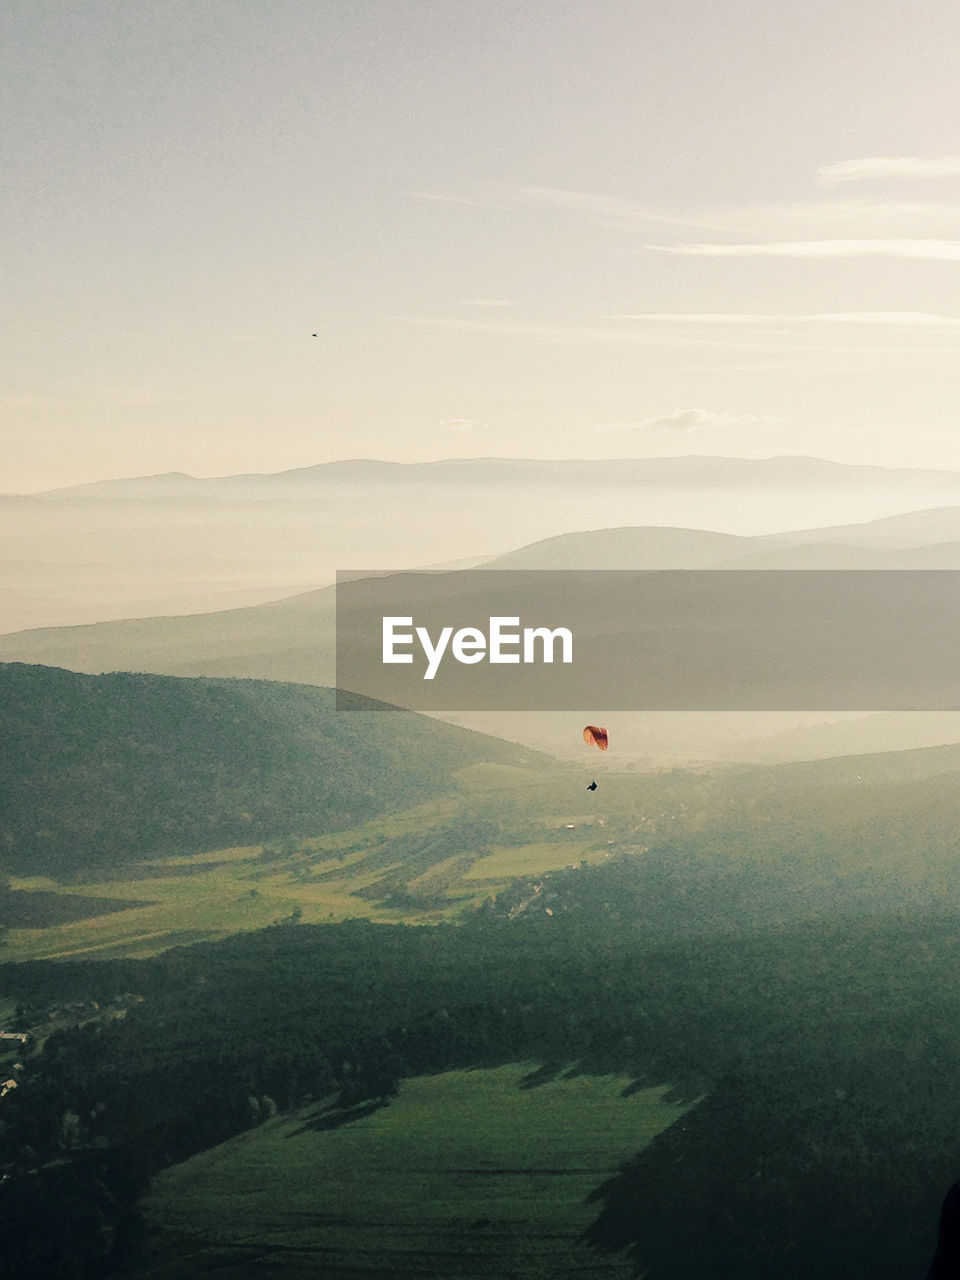 SCENIC VIEW OF HOT AIR BALLOON FLYING OVER LANDSCAPE